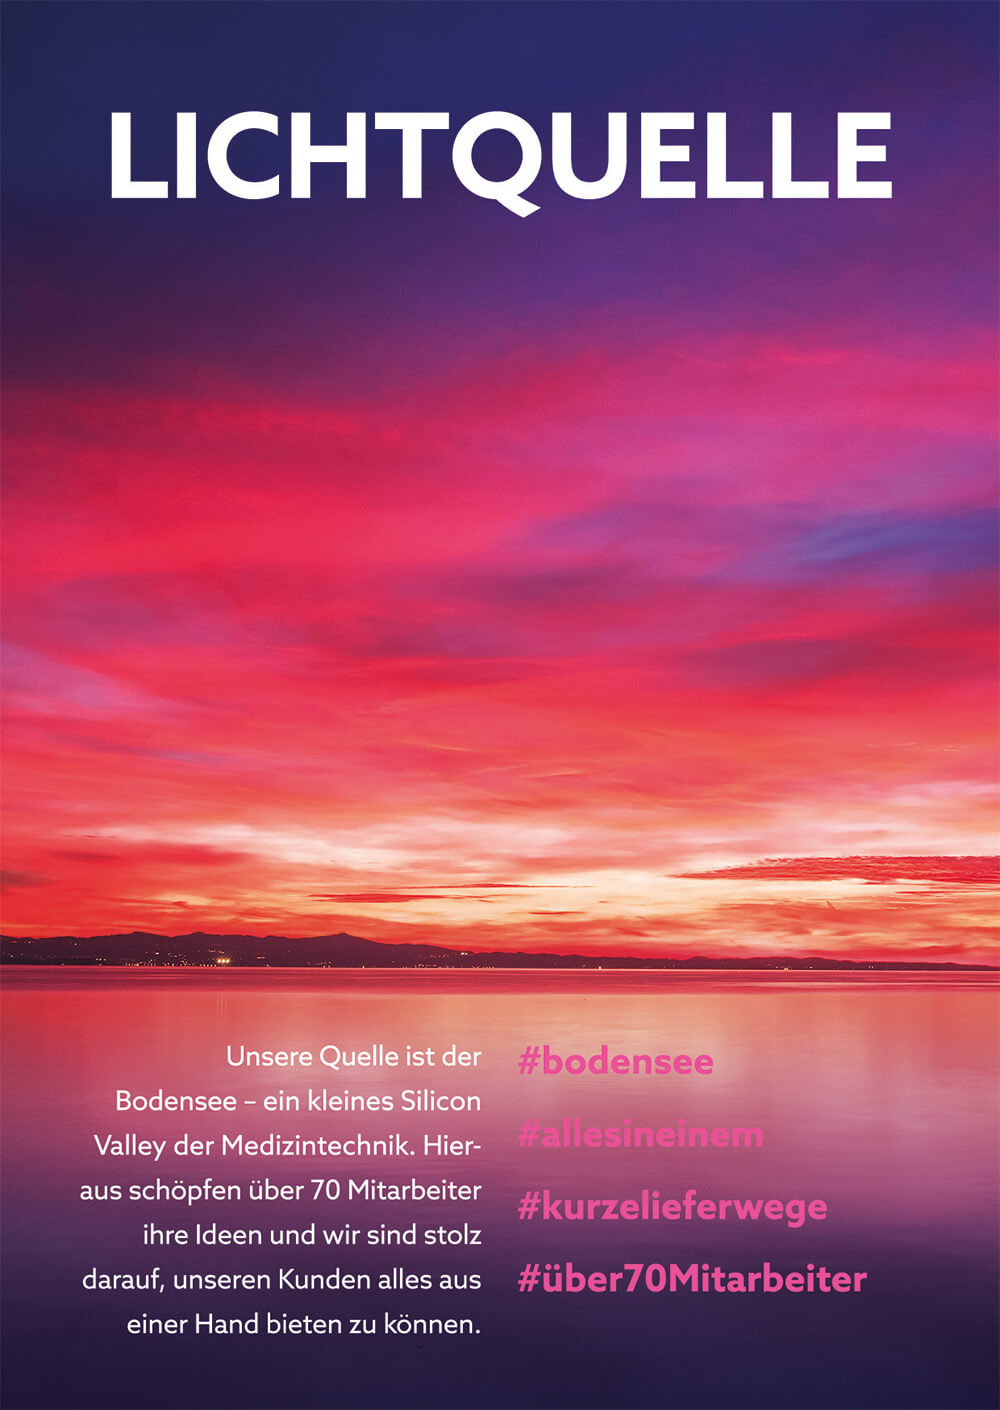 Sunset over the Lake of Constance